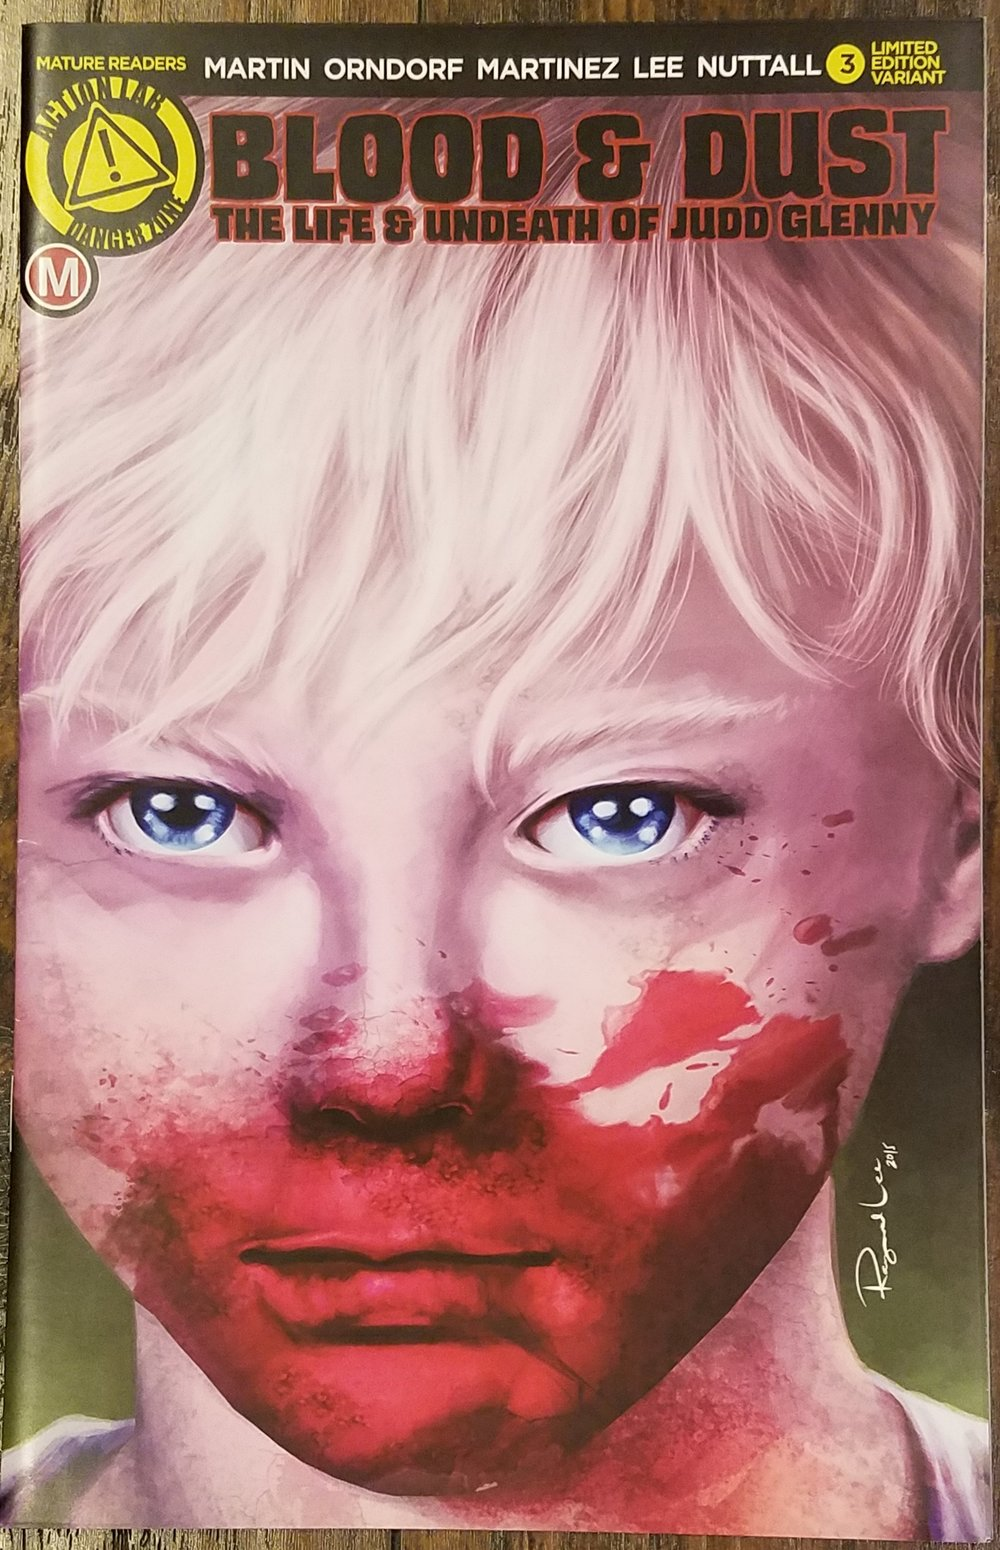 Blood & Dust: The Life & Undeath of Judd Glenny by Michael Martin & Adam Orndorf #3 Limited Edition Variant.